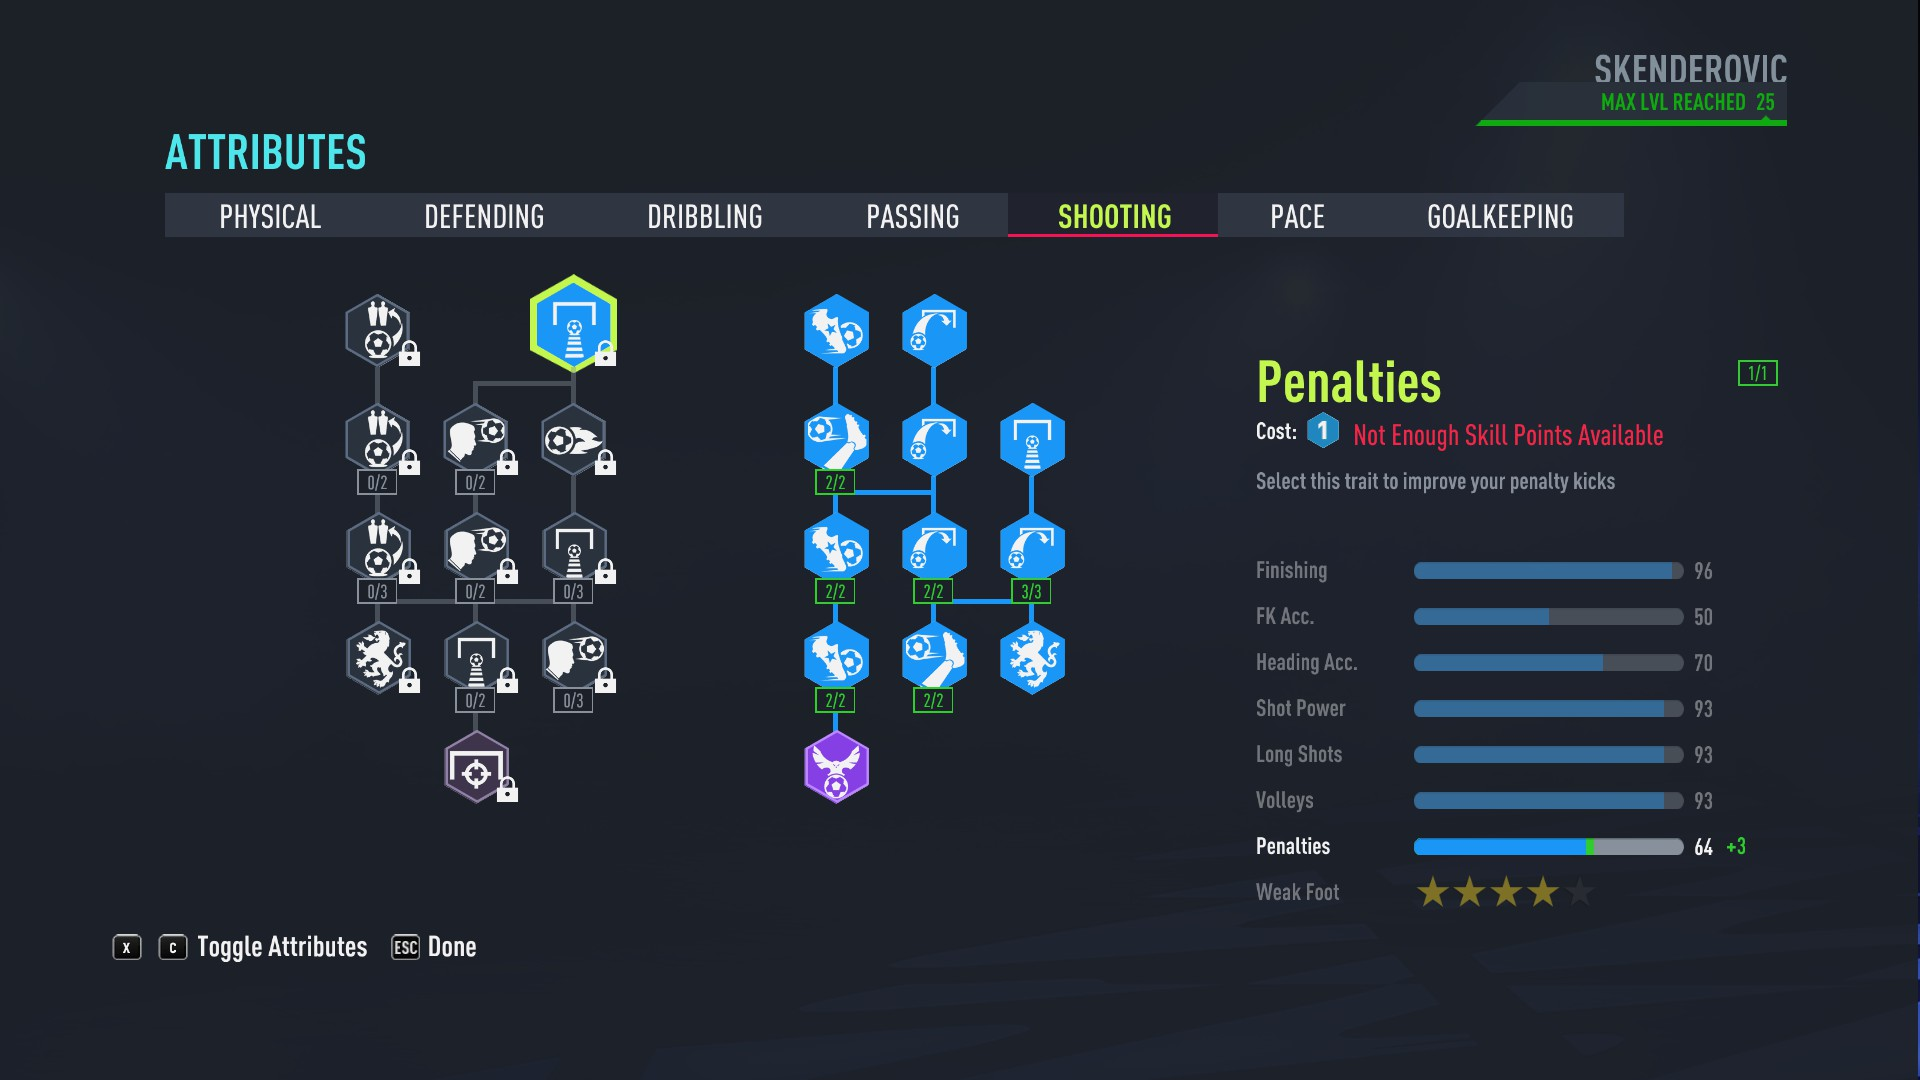 FIFA 22 - How to Reach 90 Rating in Fifa 22 Player Career Mode as a Striker Tips - Skill Points (Shooting) - ECDD44B